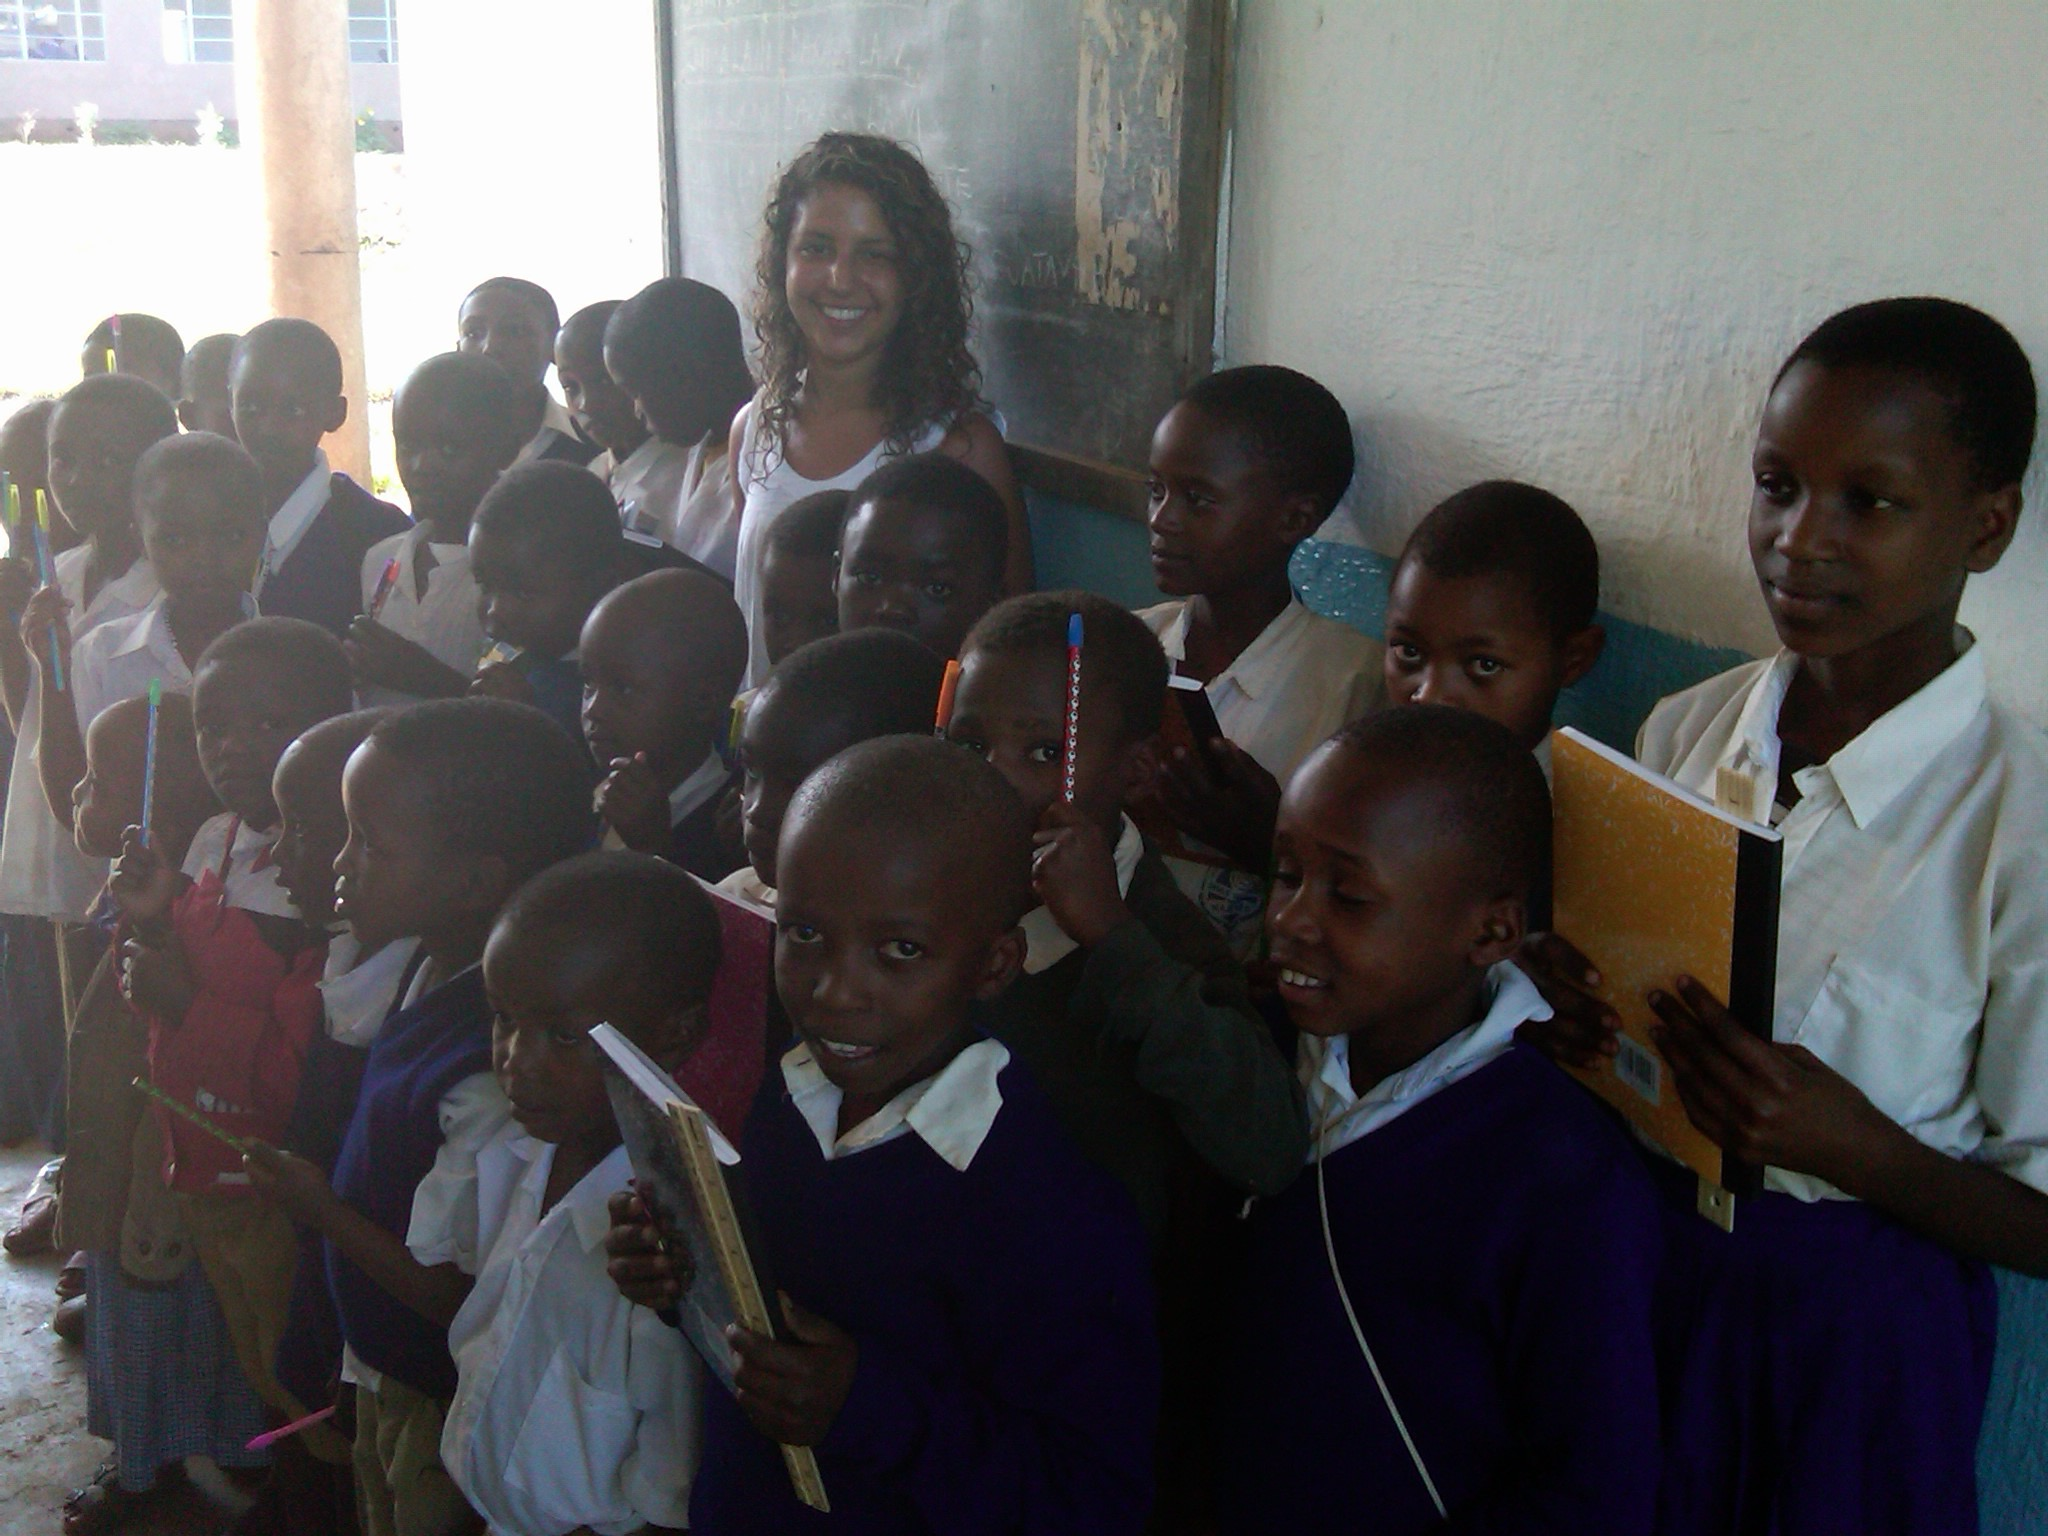 Giving new supplies to the students